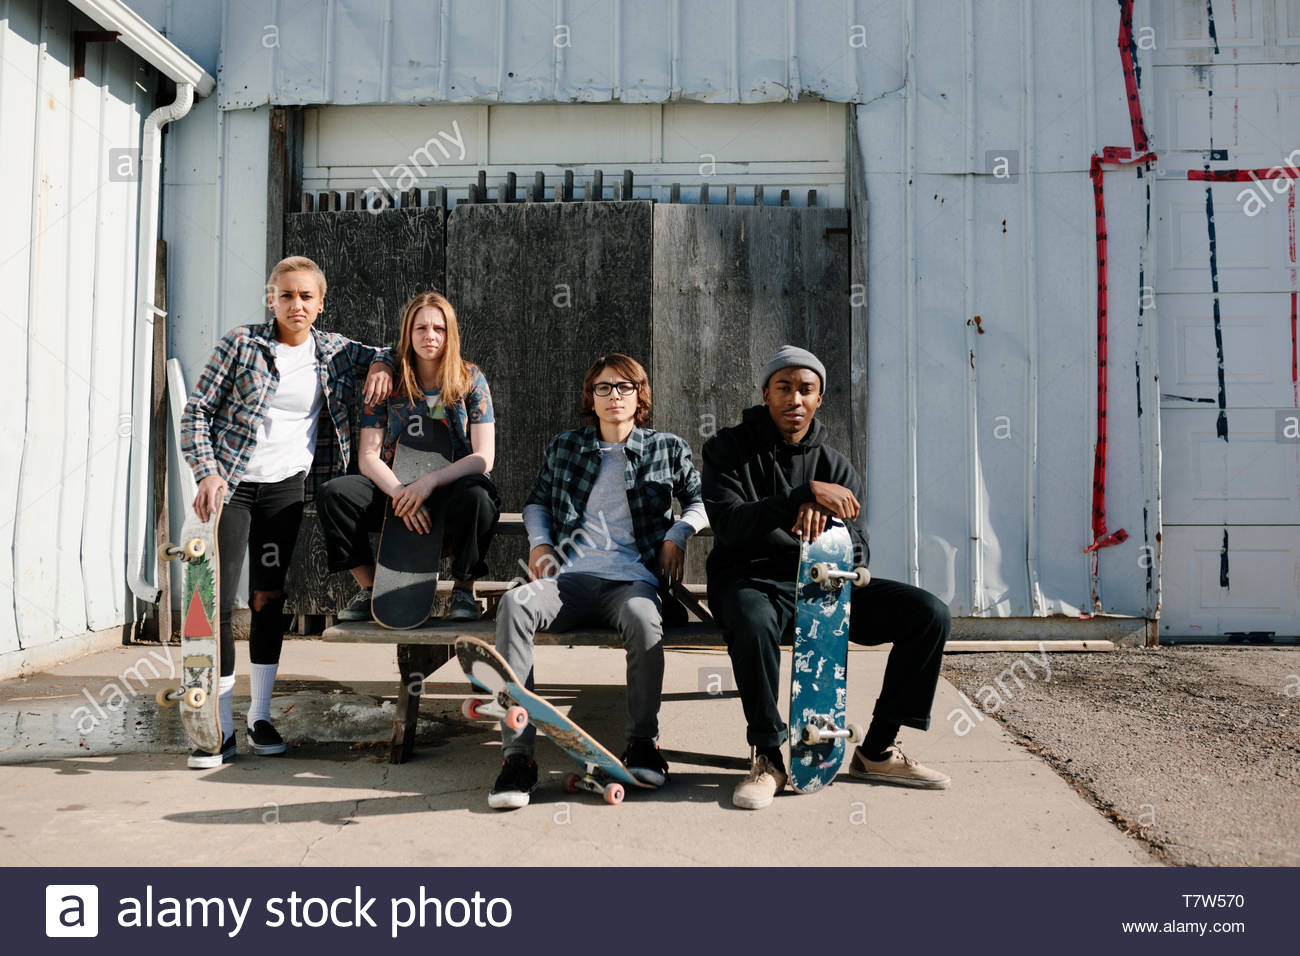 Portrait confident, cool young skateboarder friends in sunny parking lot - Stock Image